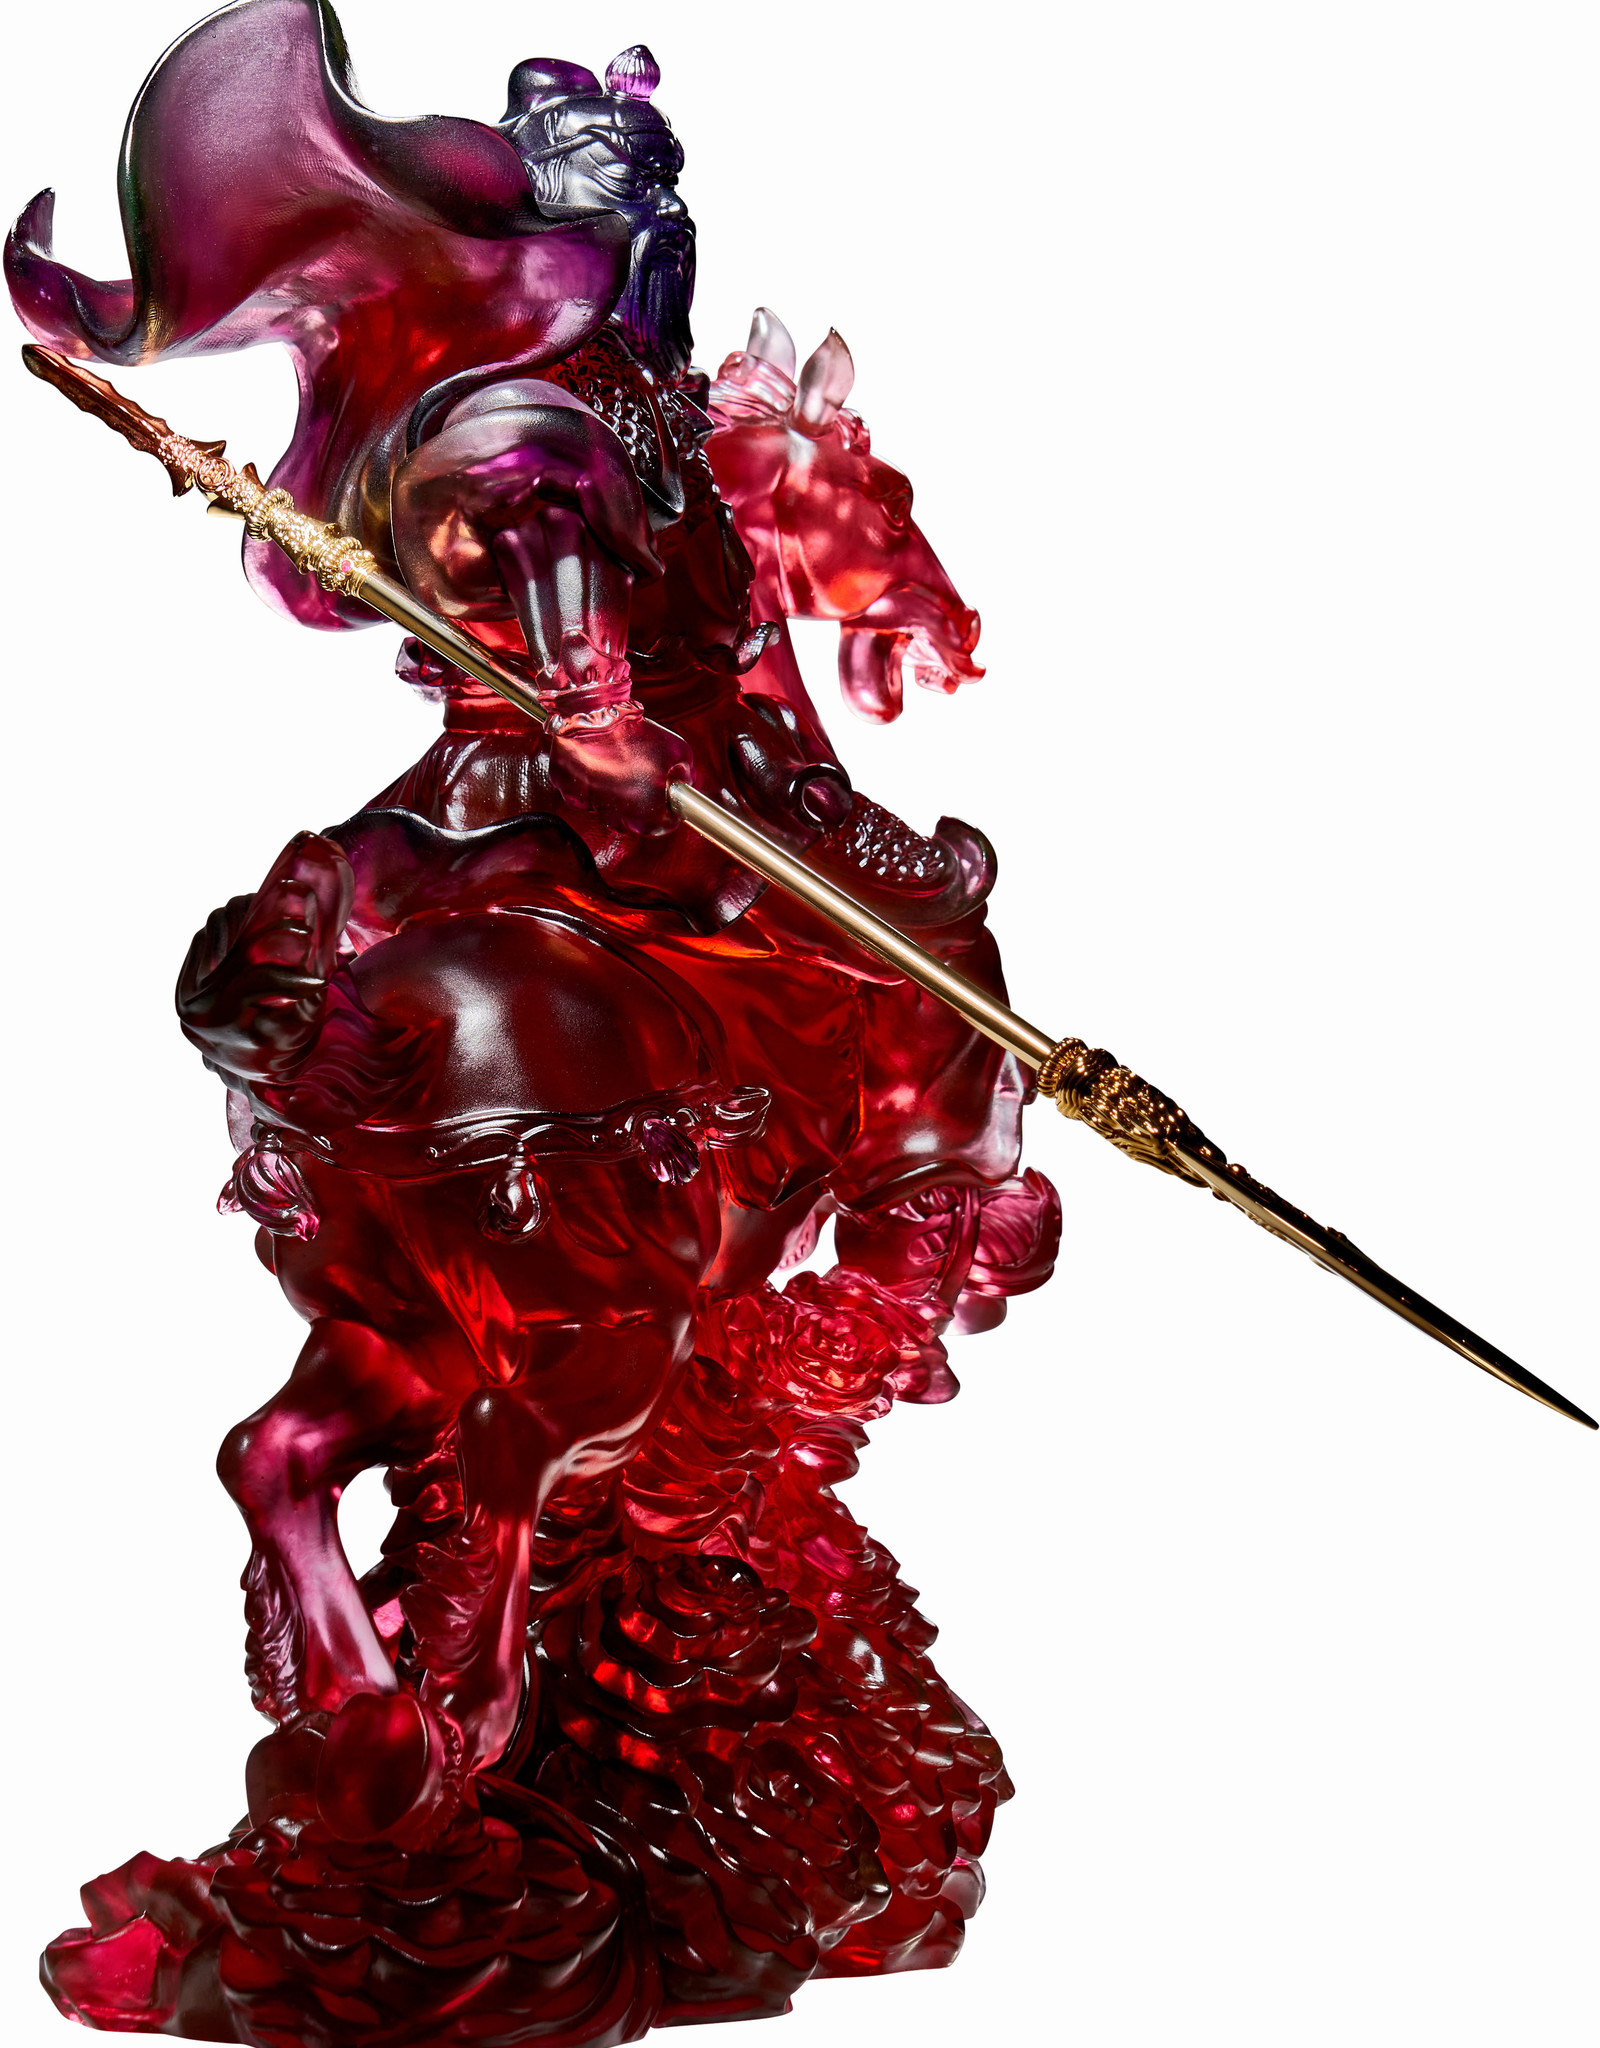 LIULI Crystal Art Crystal Statue of General Guan Gong with 24K Gold-Plated Sword (Limited Edition)